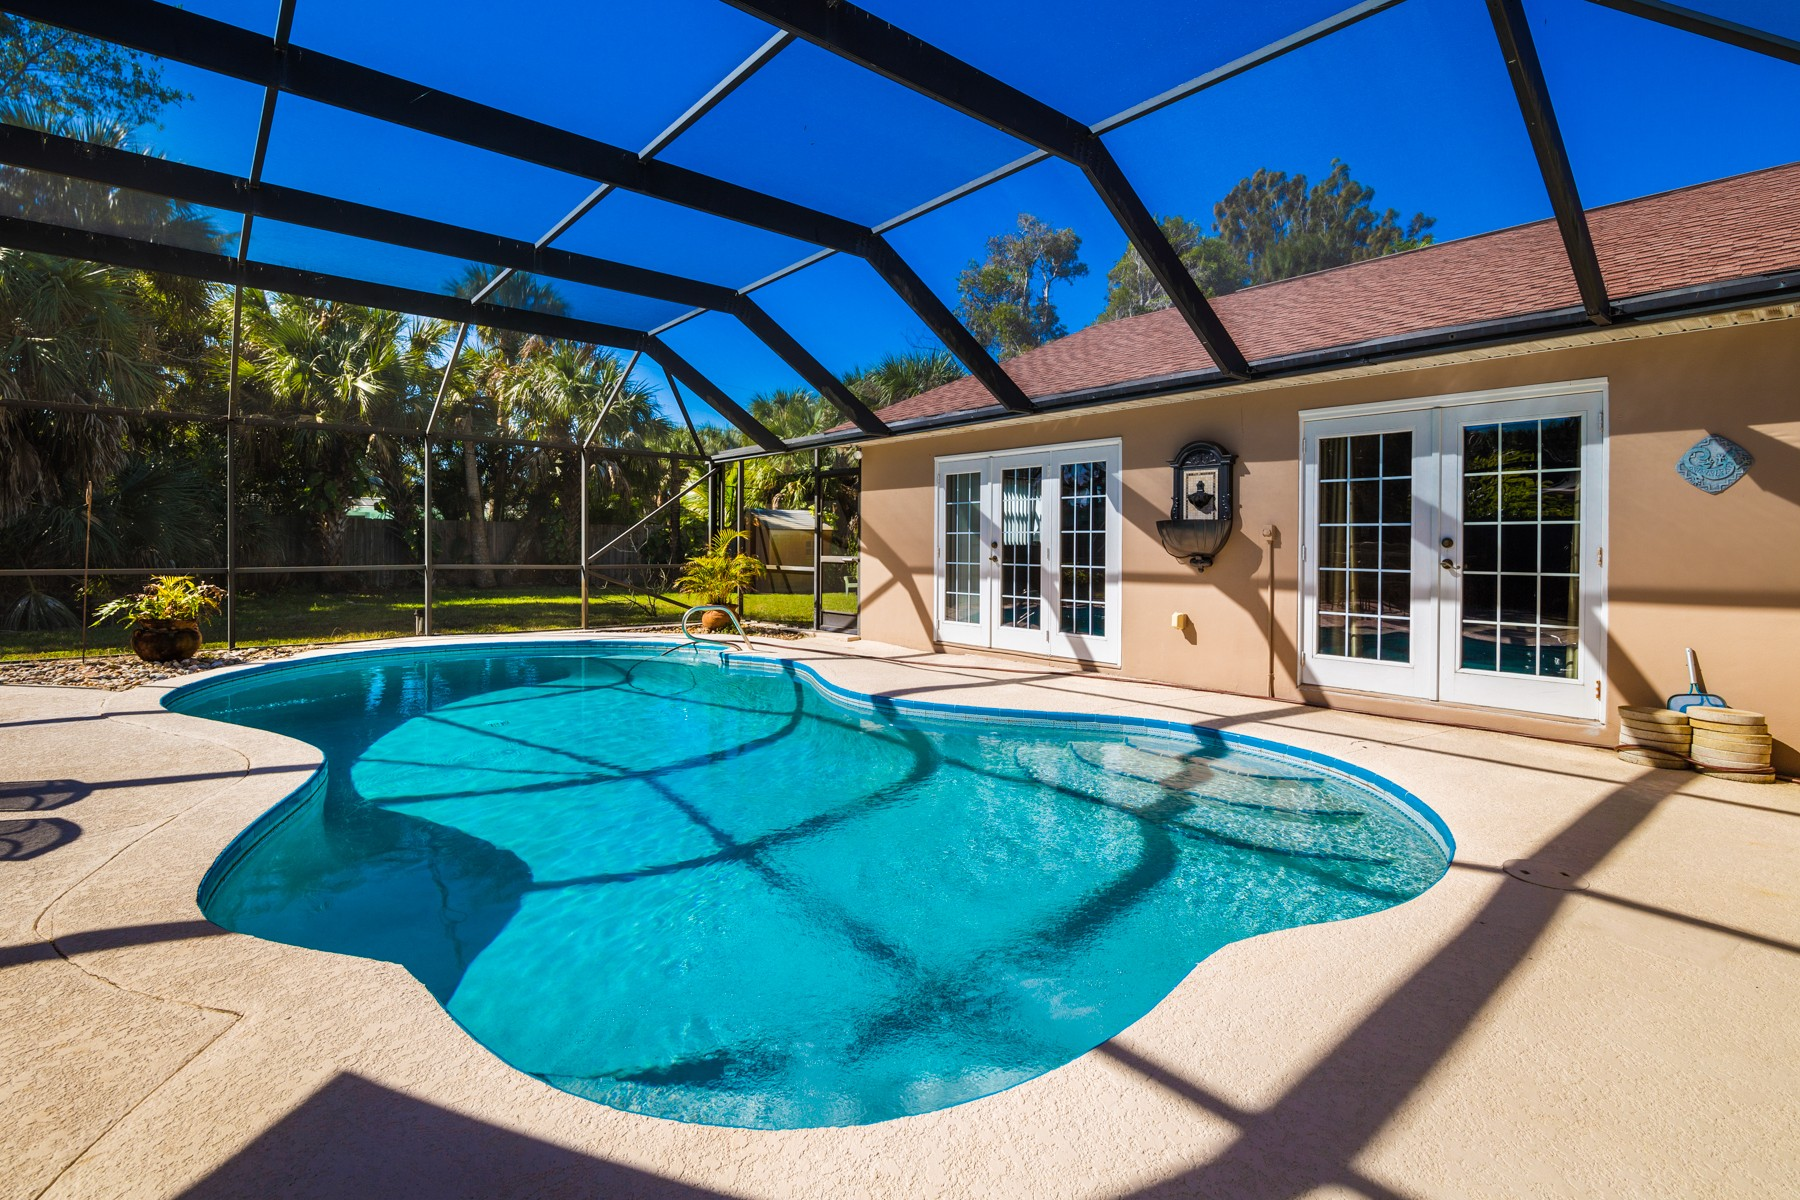 Additional photo for property listing at Spacious Pool Home Ideal for Entertaining. 413 Second Avenue Melbourne Beach, Florida 32951 United States